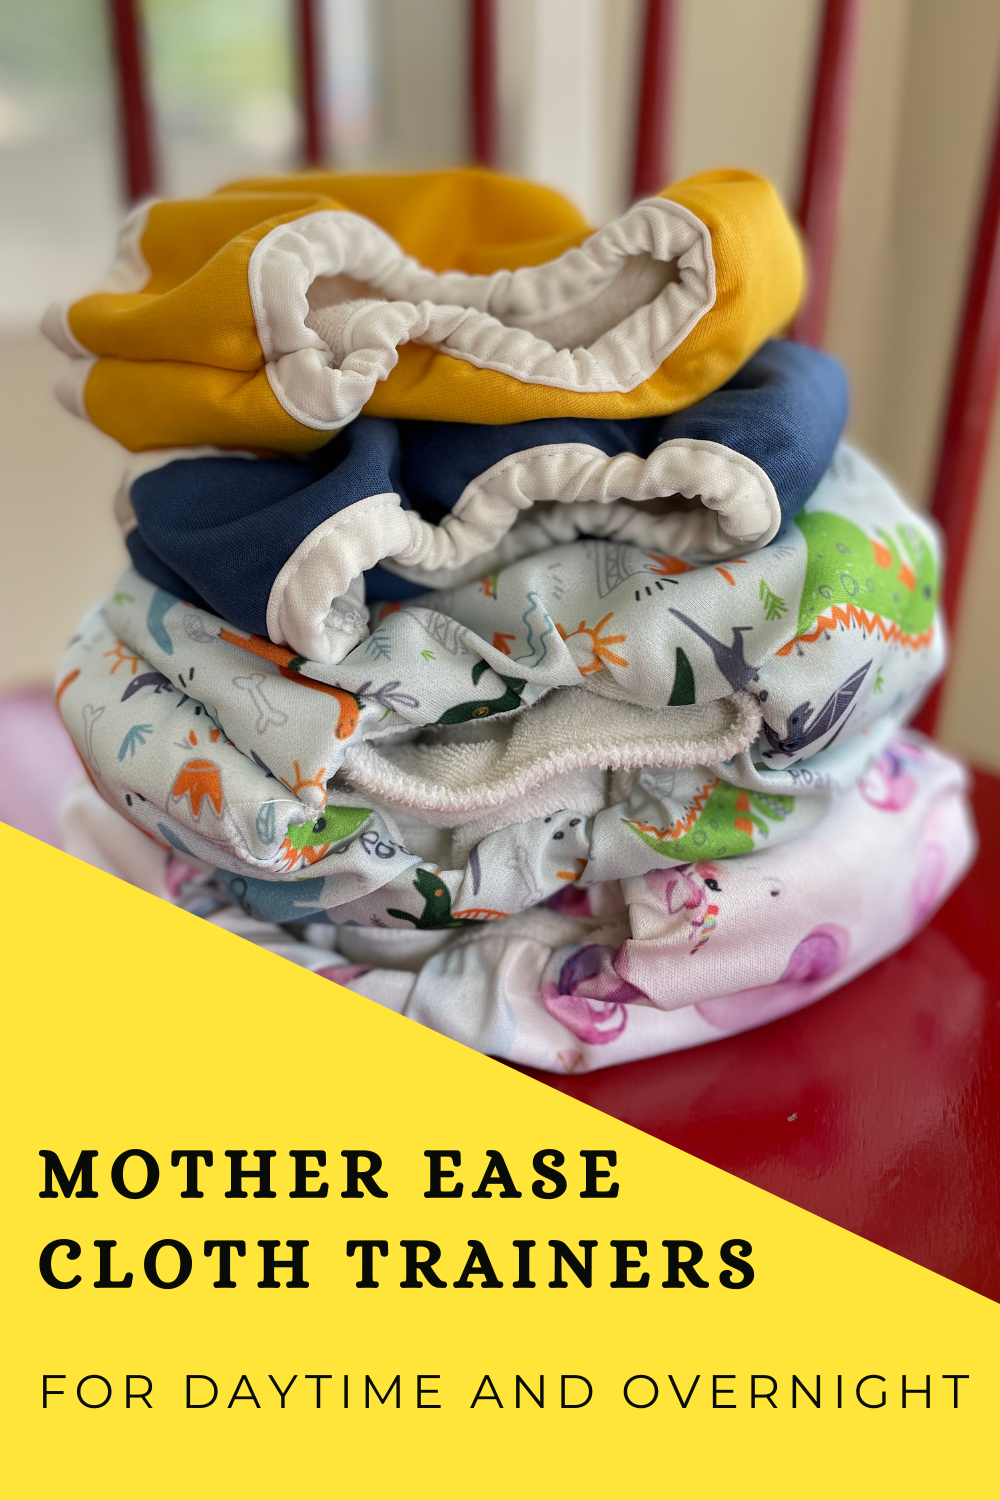 Mother-ease cloth training pants